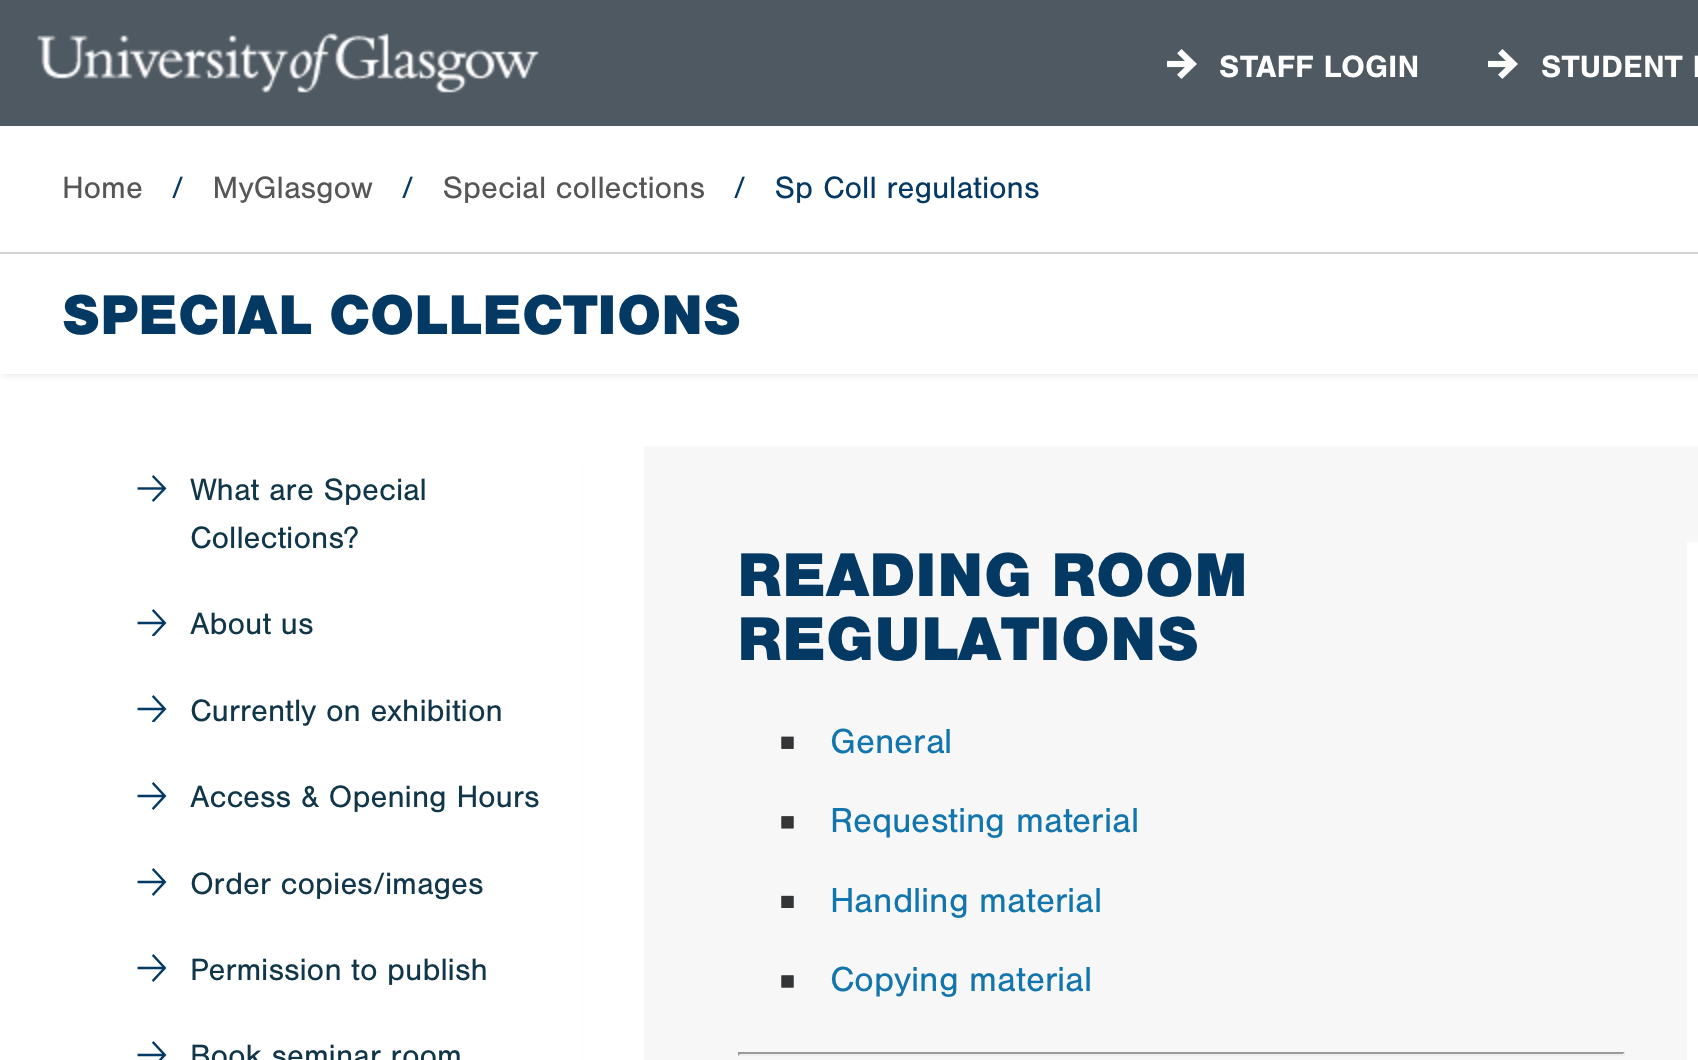 [Image Description: A screenshot of the University of Glasgow Special Collections' Rules and Regulations web page.]